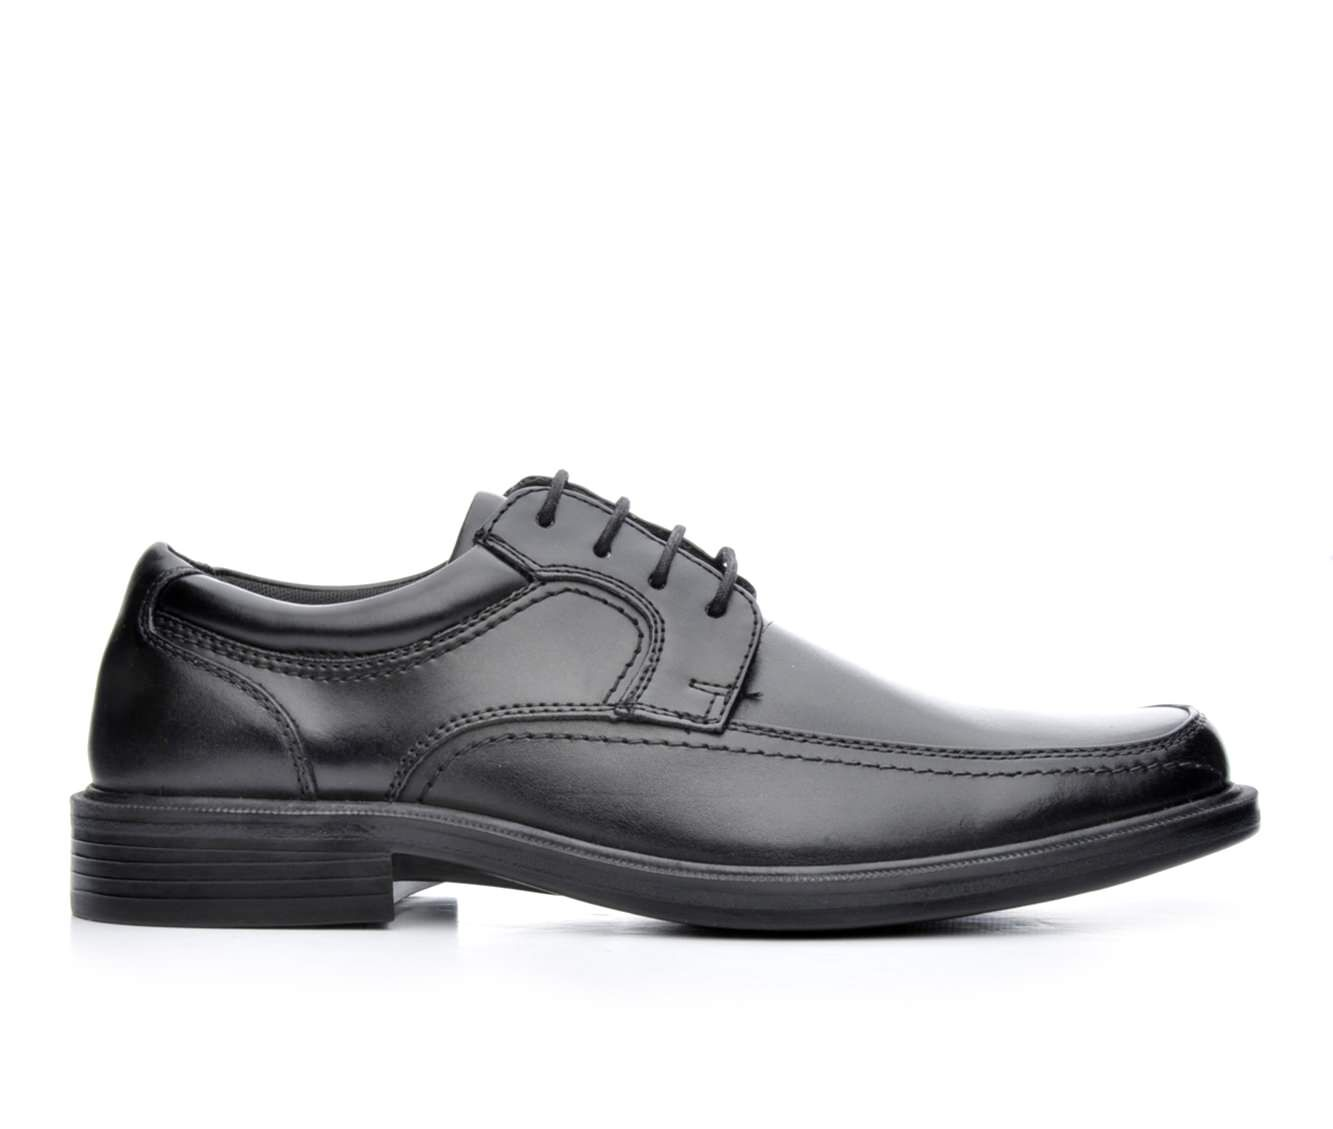 latest series Men's Dockers Manvel Dress Shoes Black